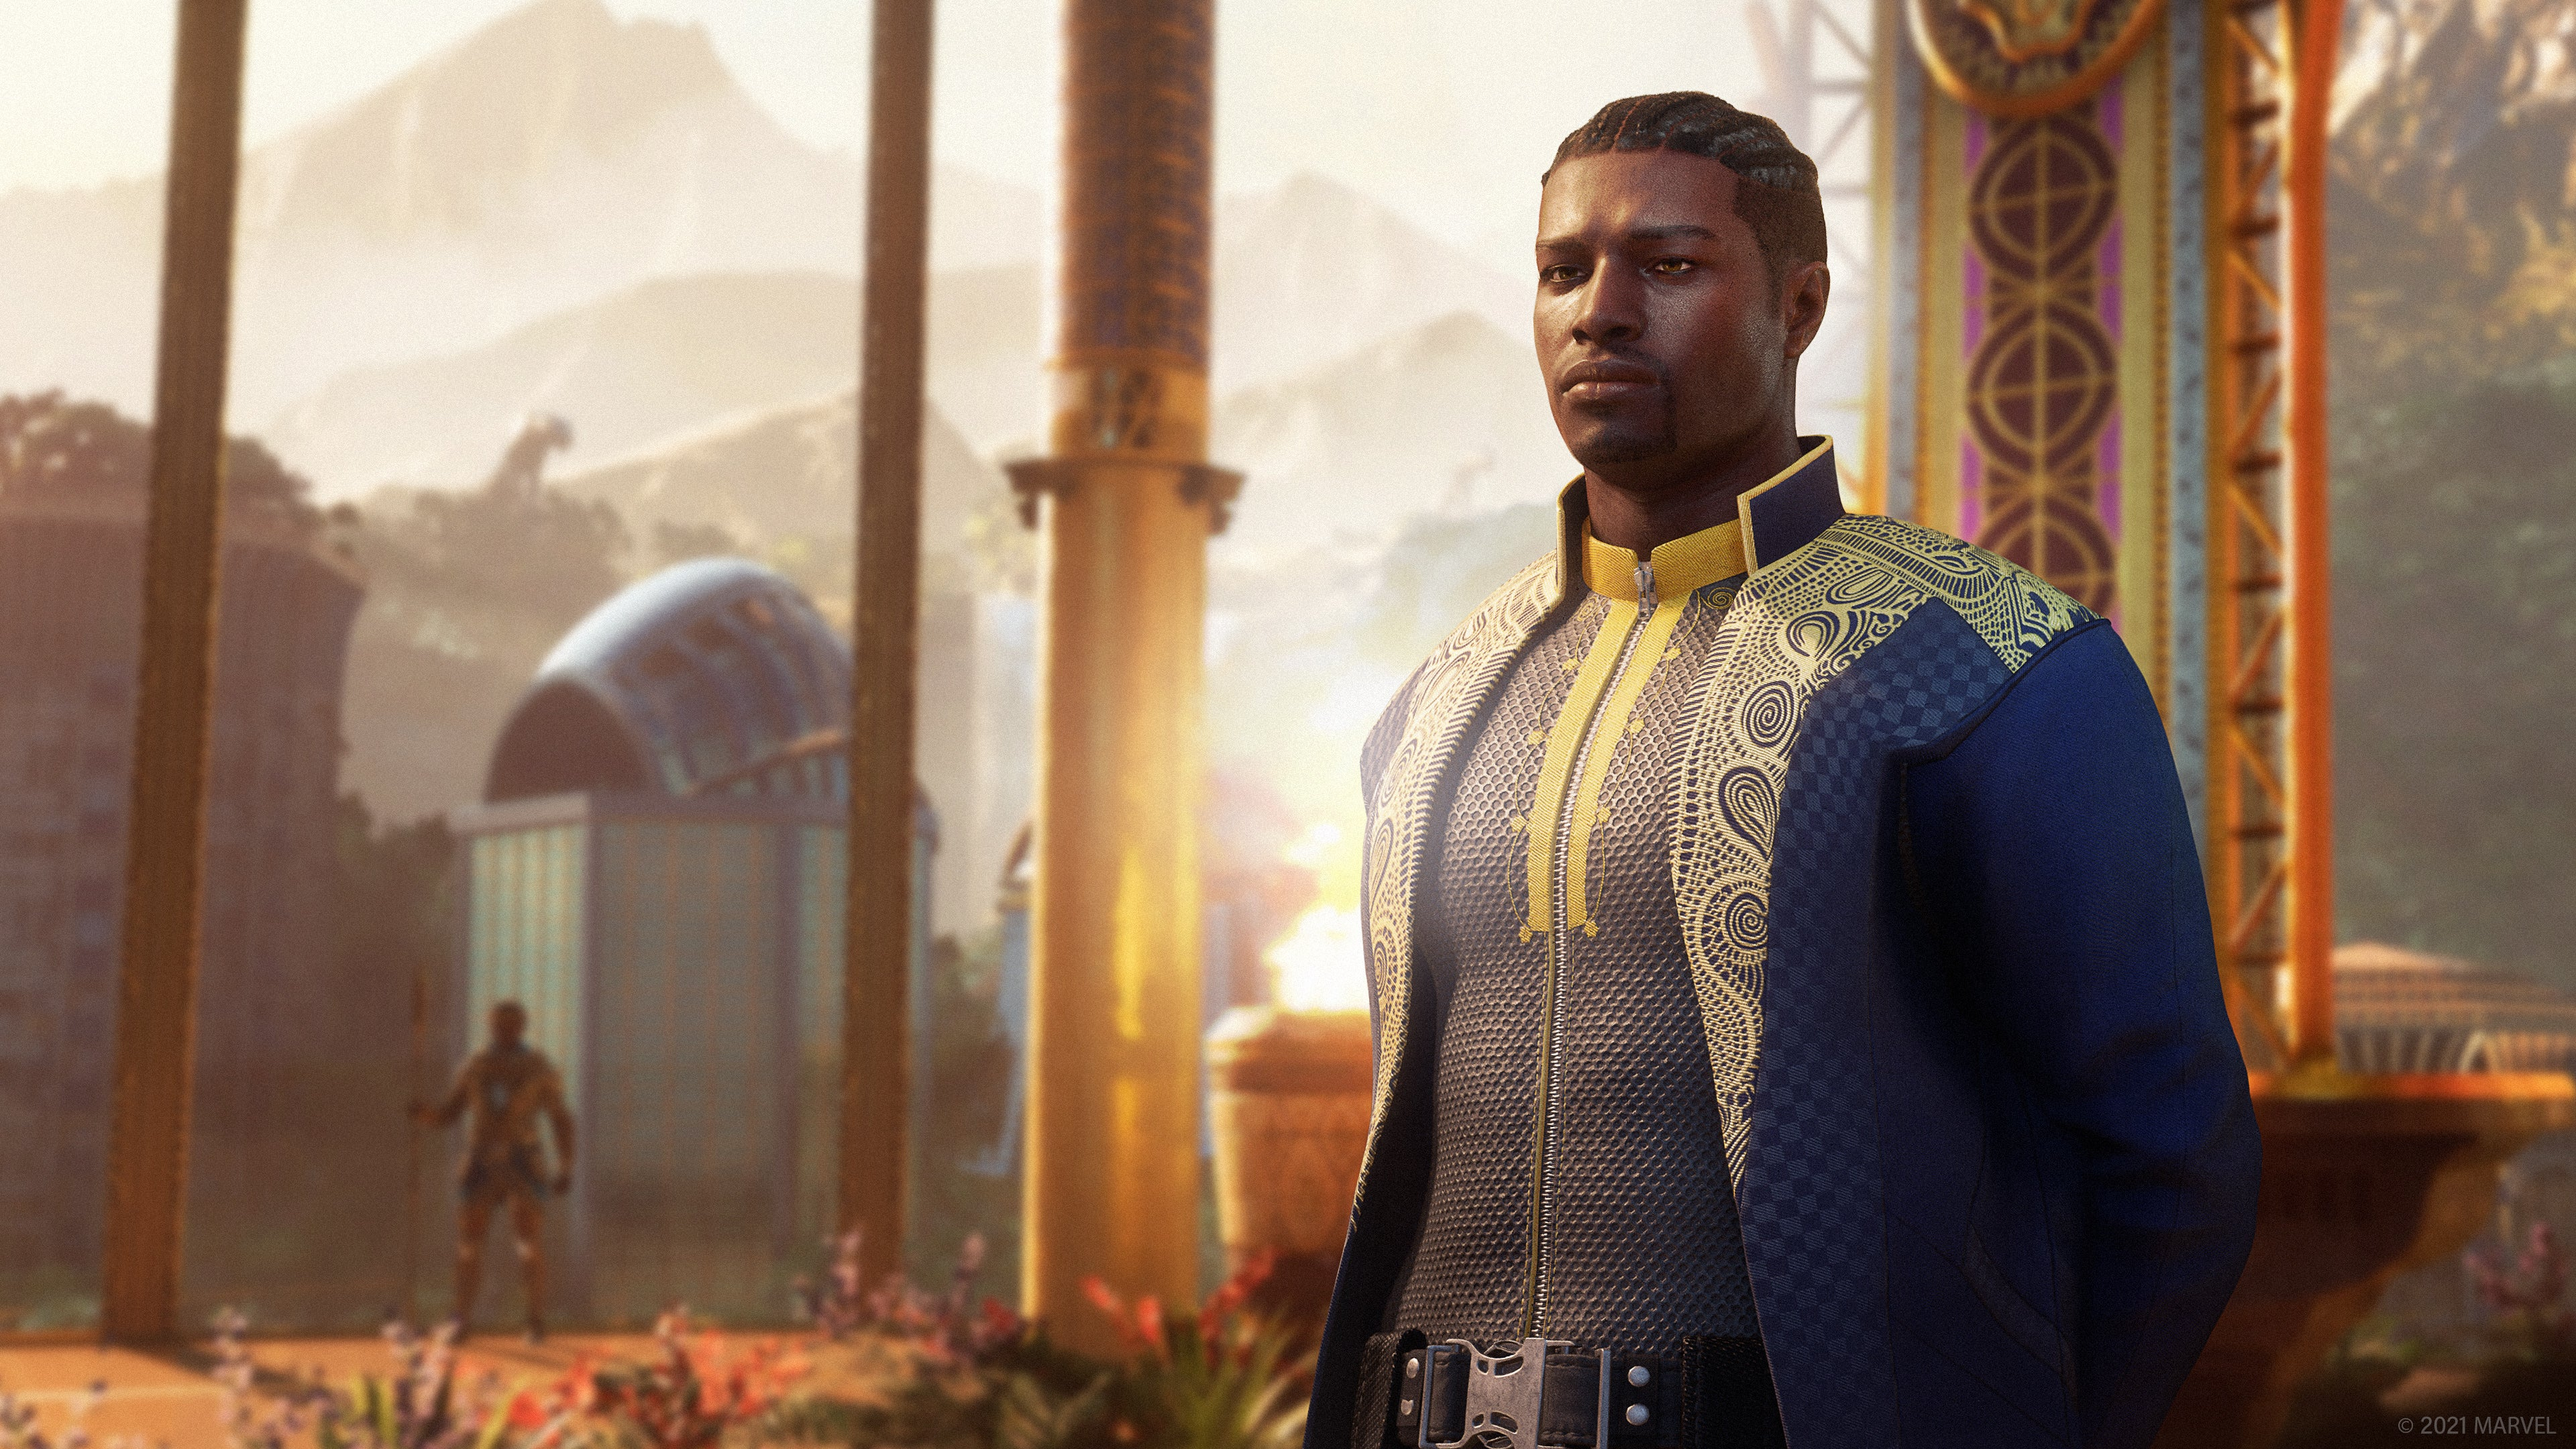 This concept art shows T'Challa standing in his throne room in the capital city of Wakanda, Birnin Zana. Everything is gleaming in gold, including the fabric of his regal blue robes.